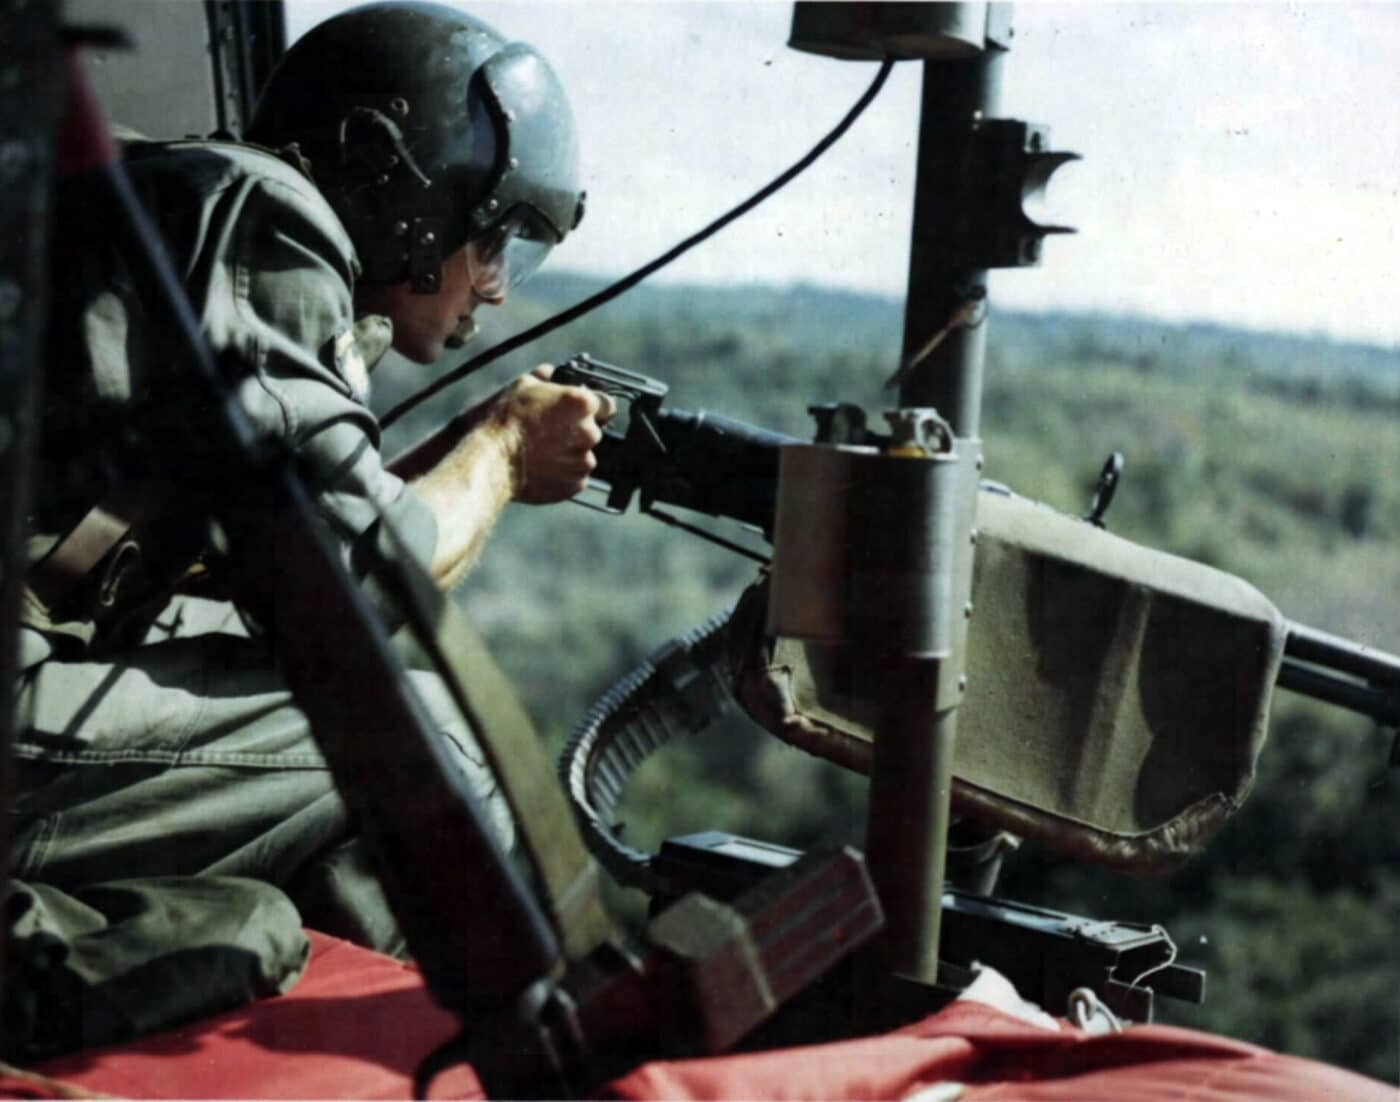 U.S. Army Air Cav with M60 in helicopter